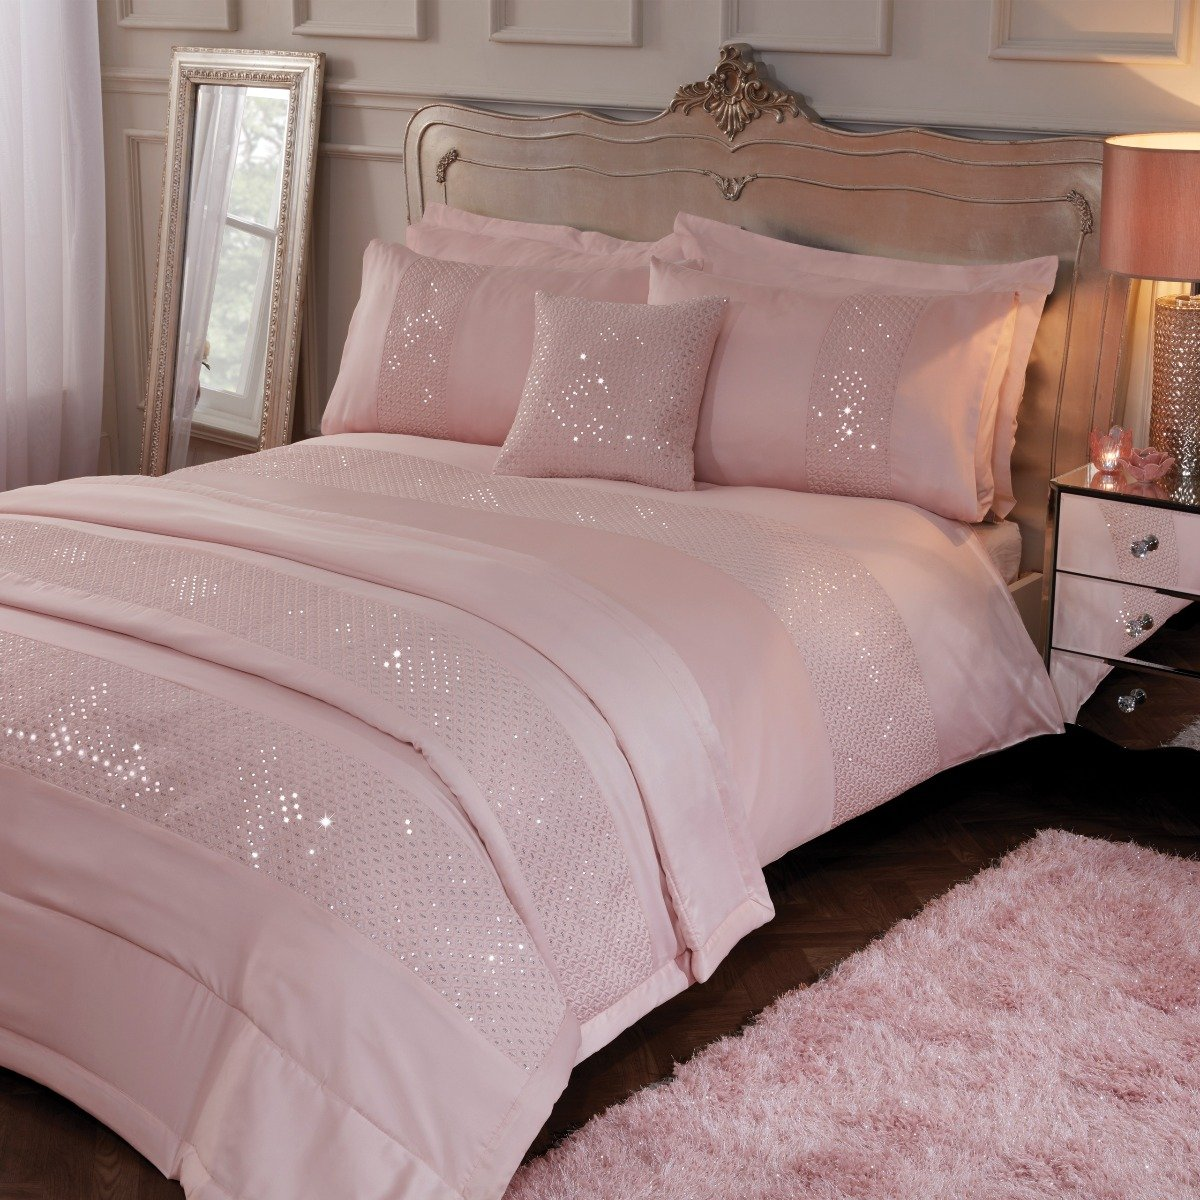 Subtle Sequins Bedding - Reversible Duvet Cover and Pillowcase Set